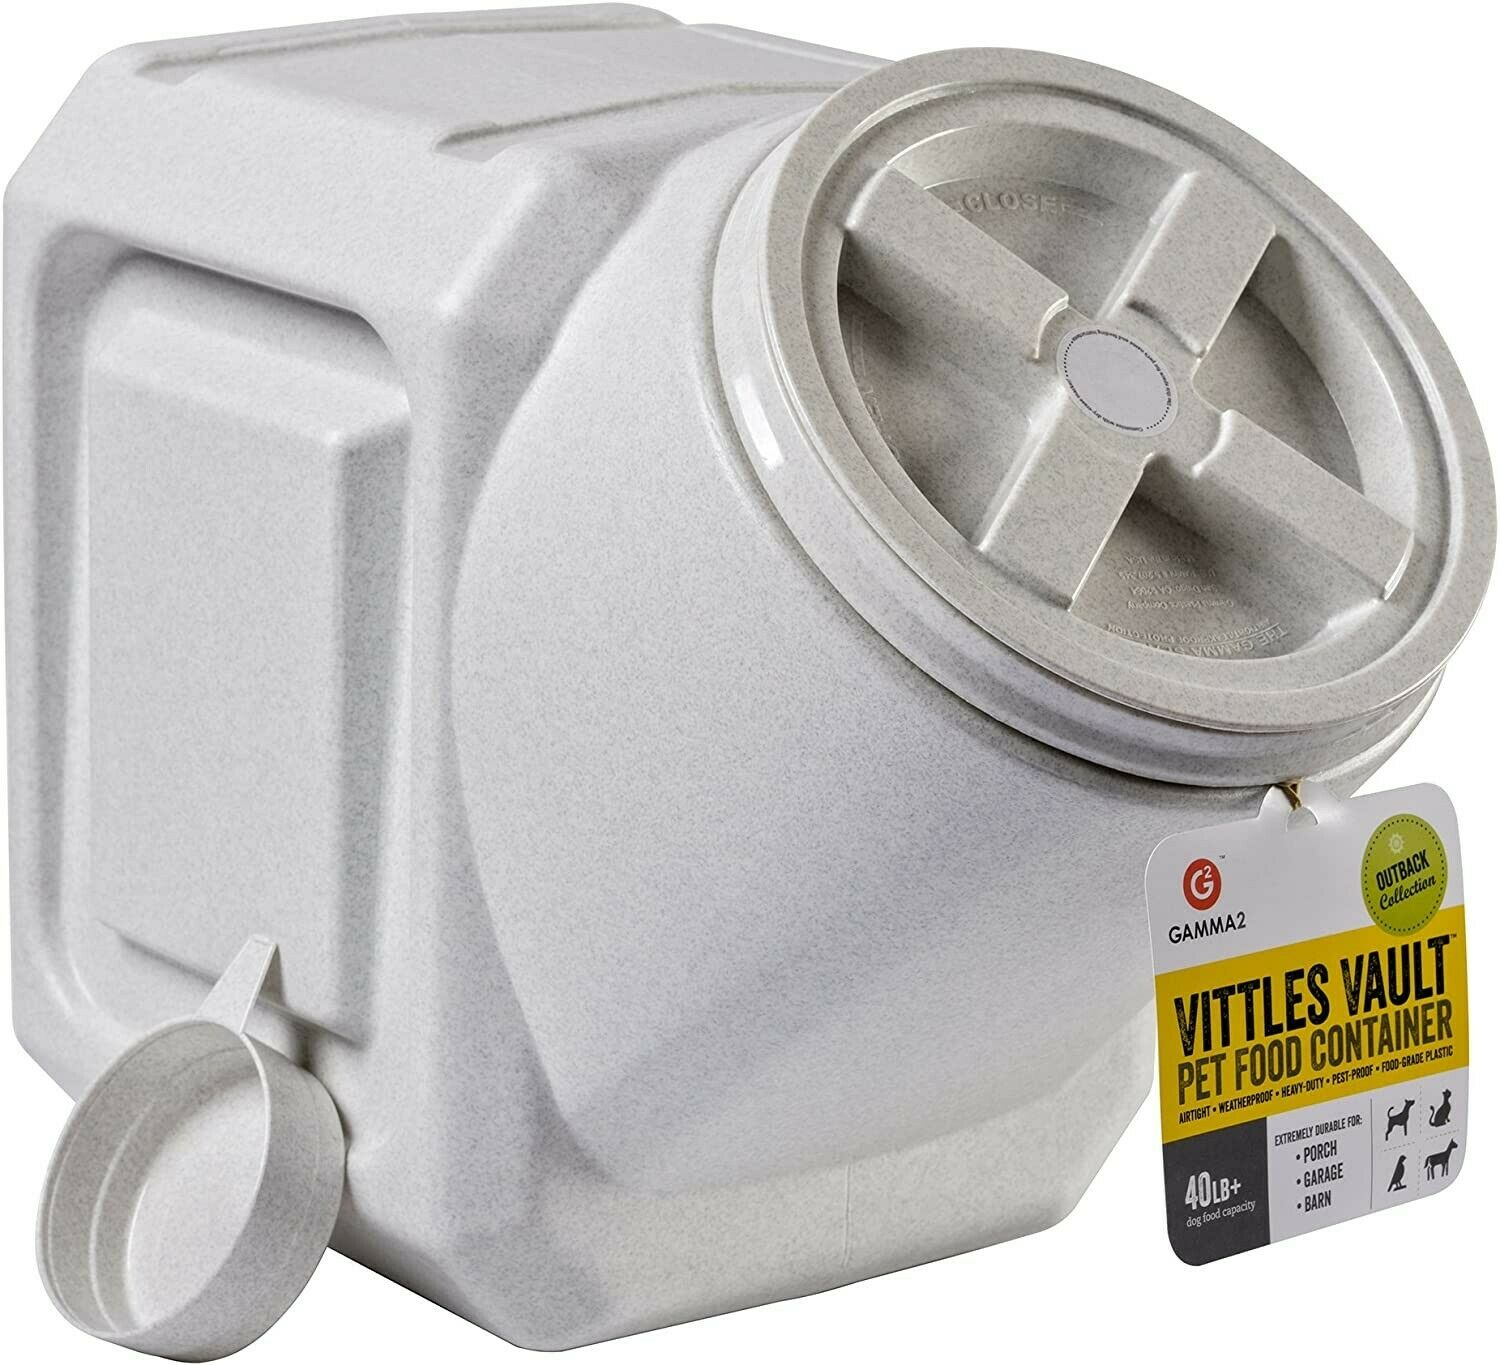 Vittles Vault Outback Stackable 40 Lb Airtight Pet Food Stor